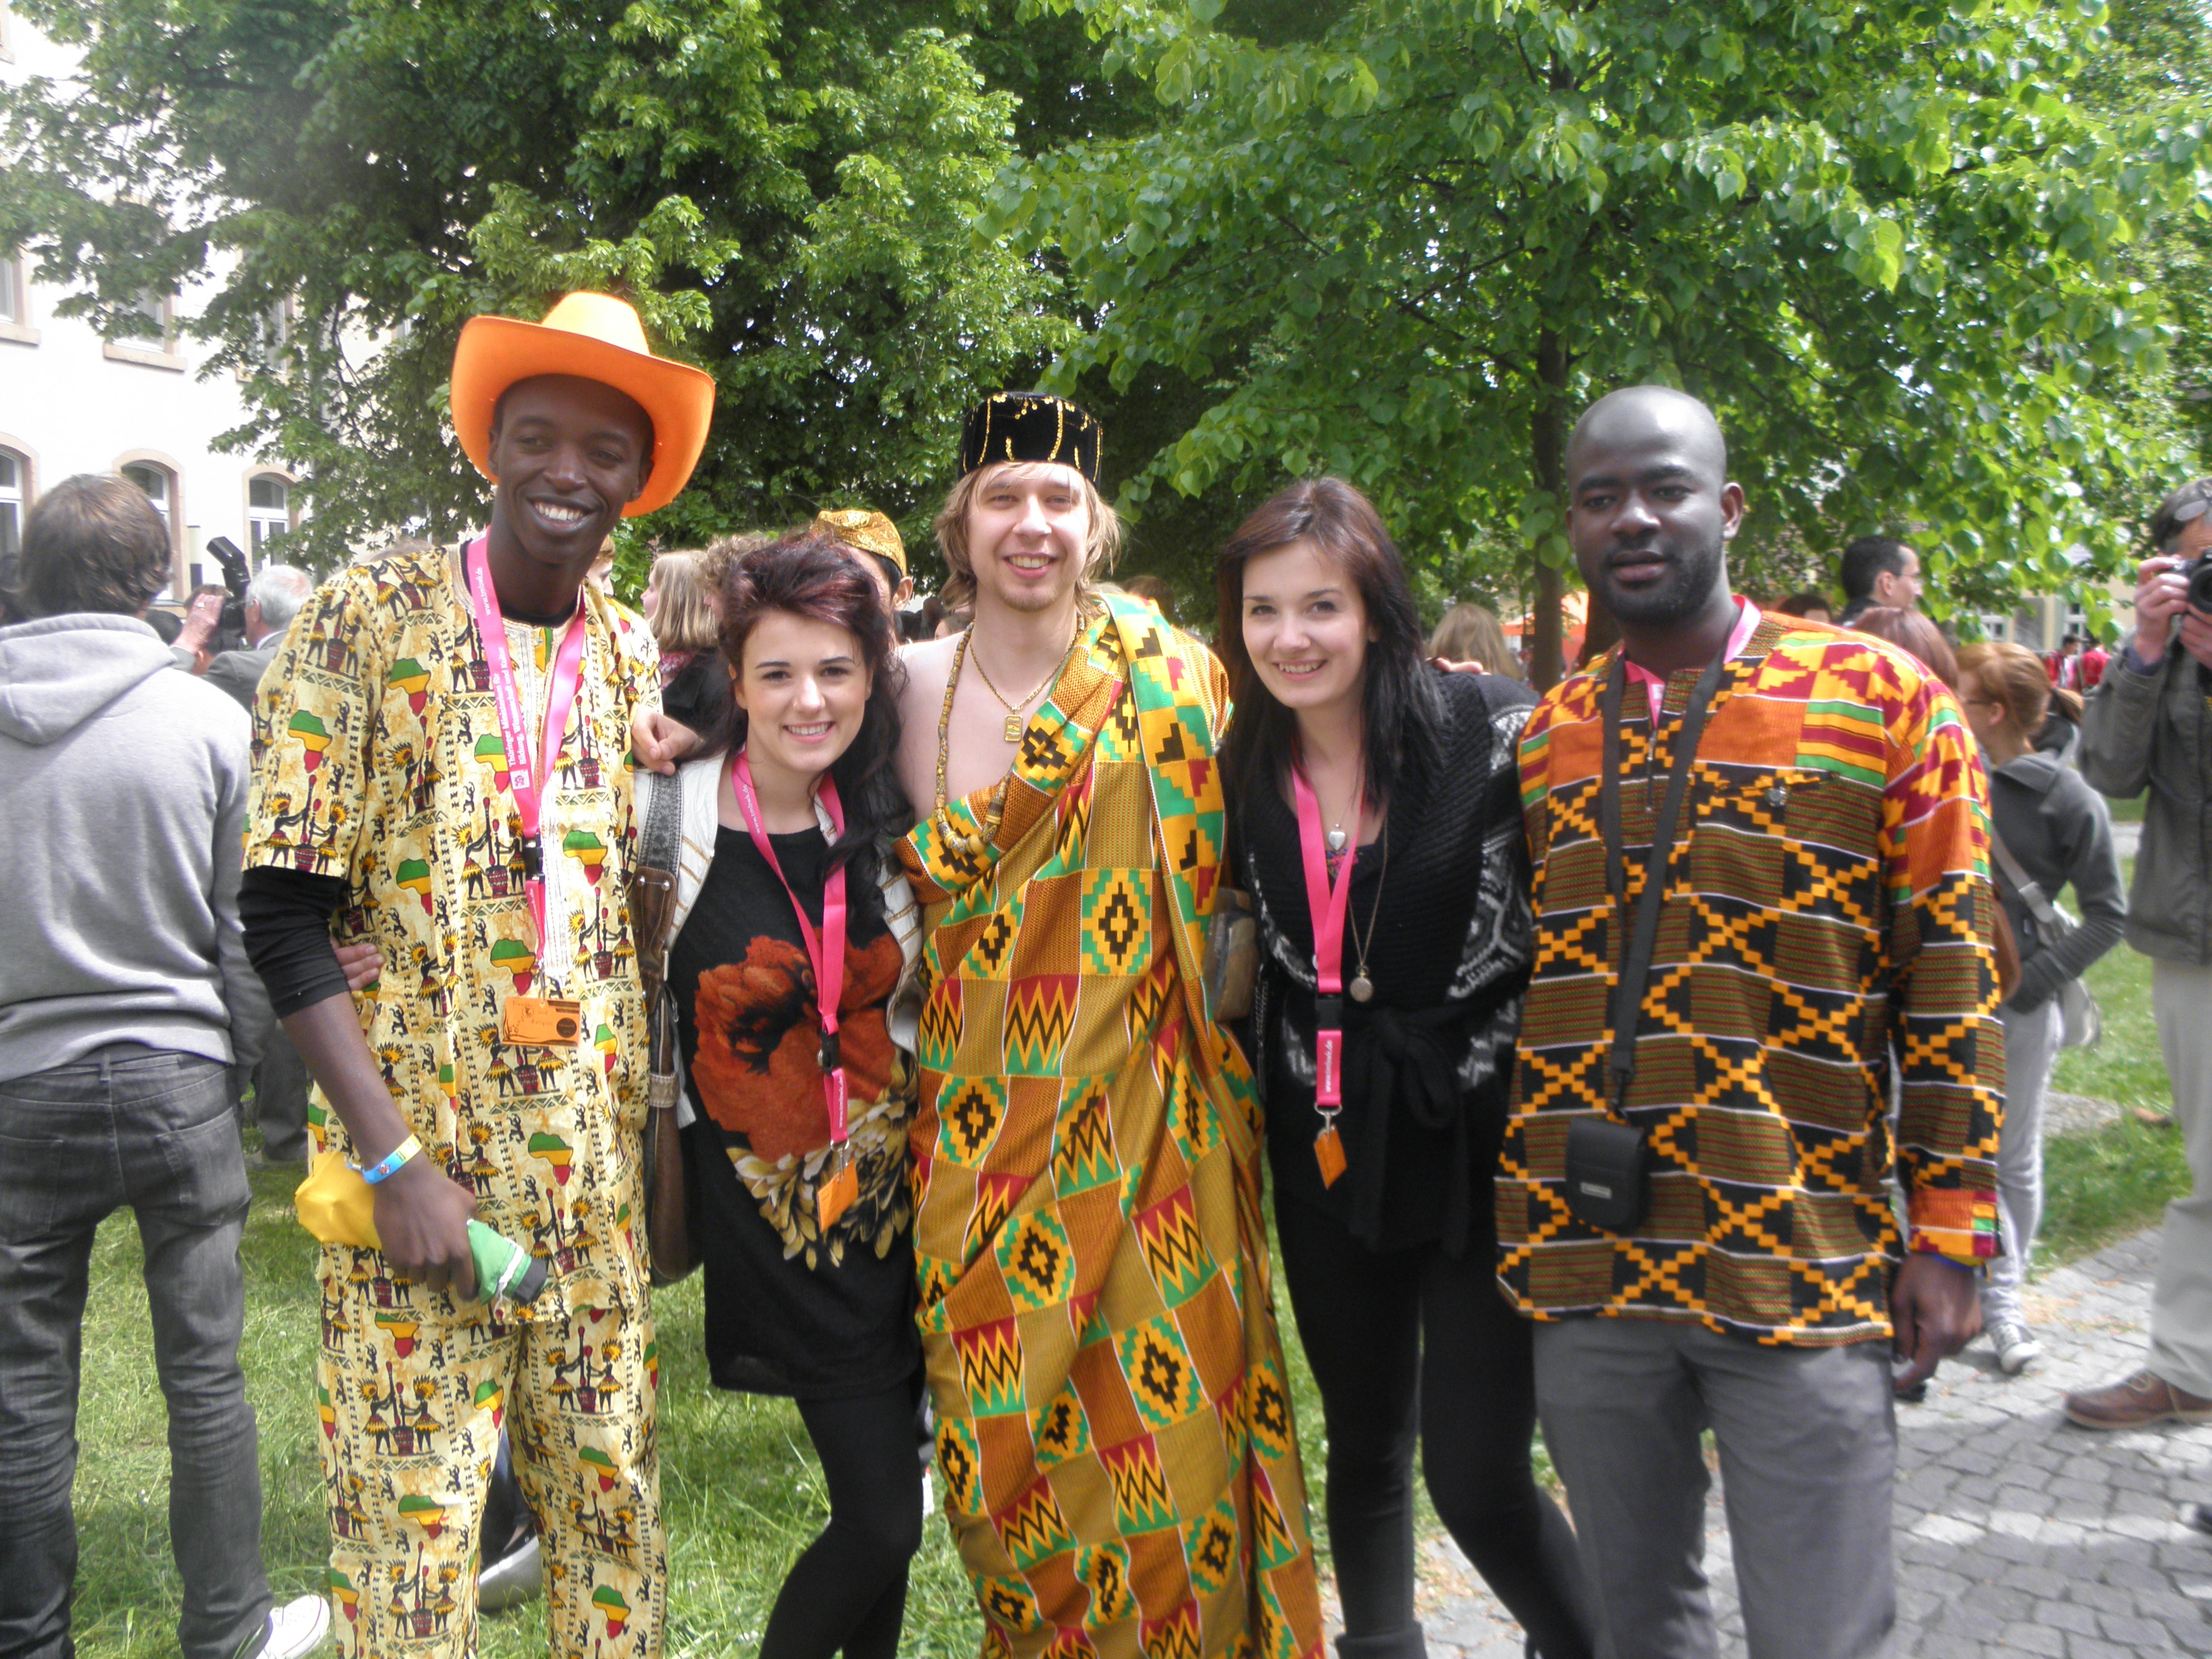 Hanging out with some of the Zimbabwe delegates and a German student dressed in African gear lol